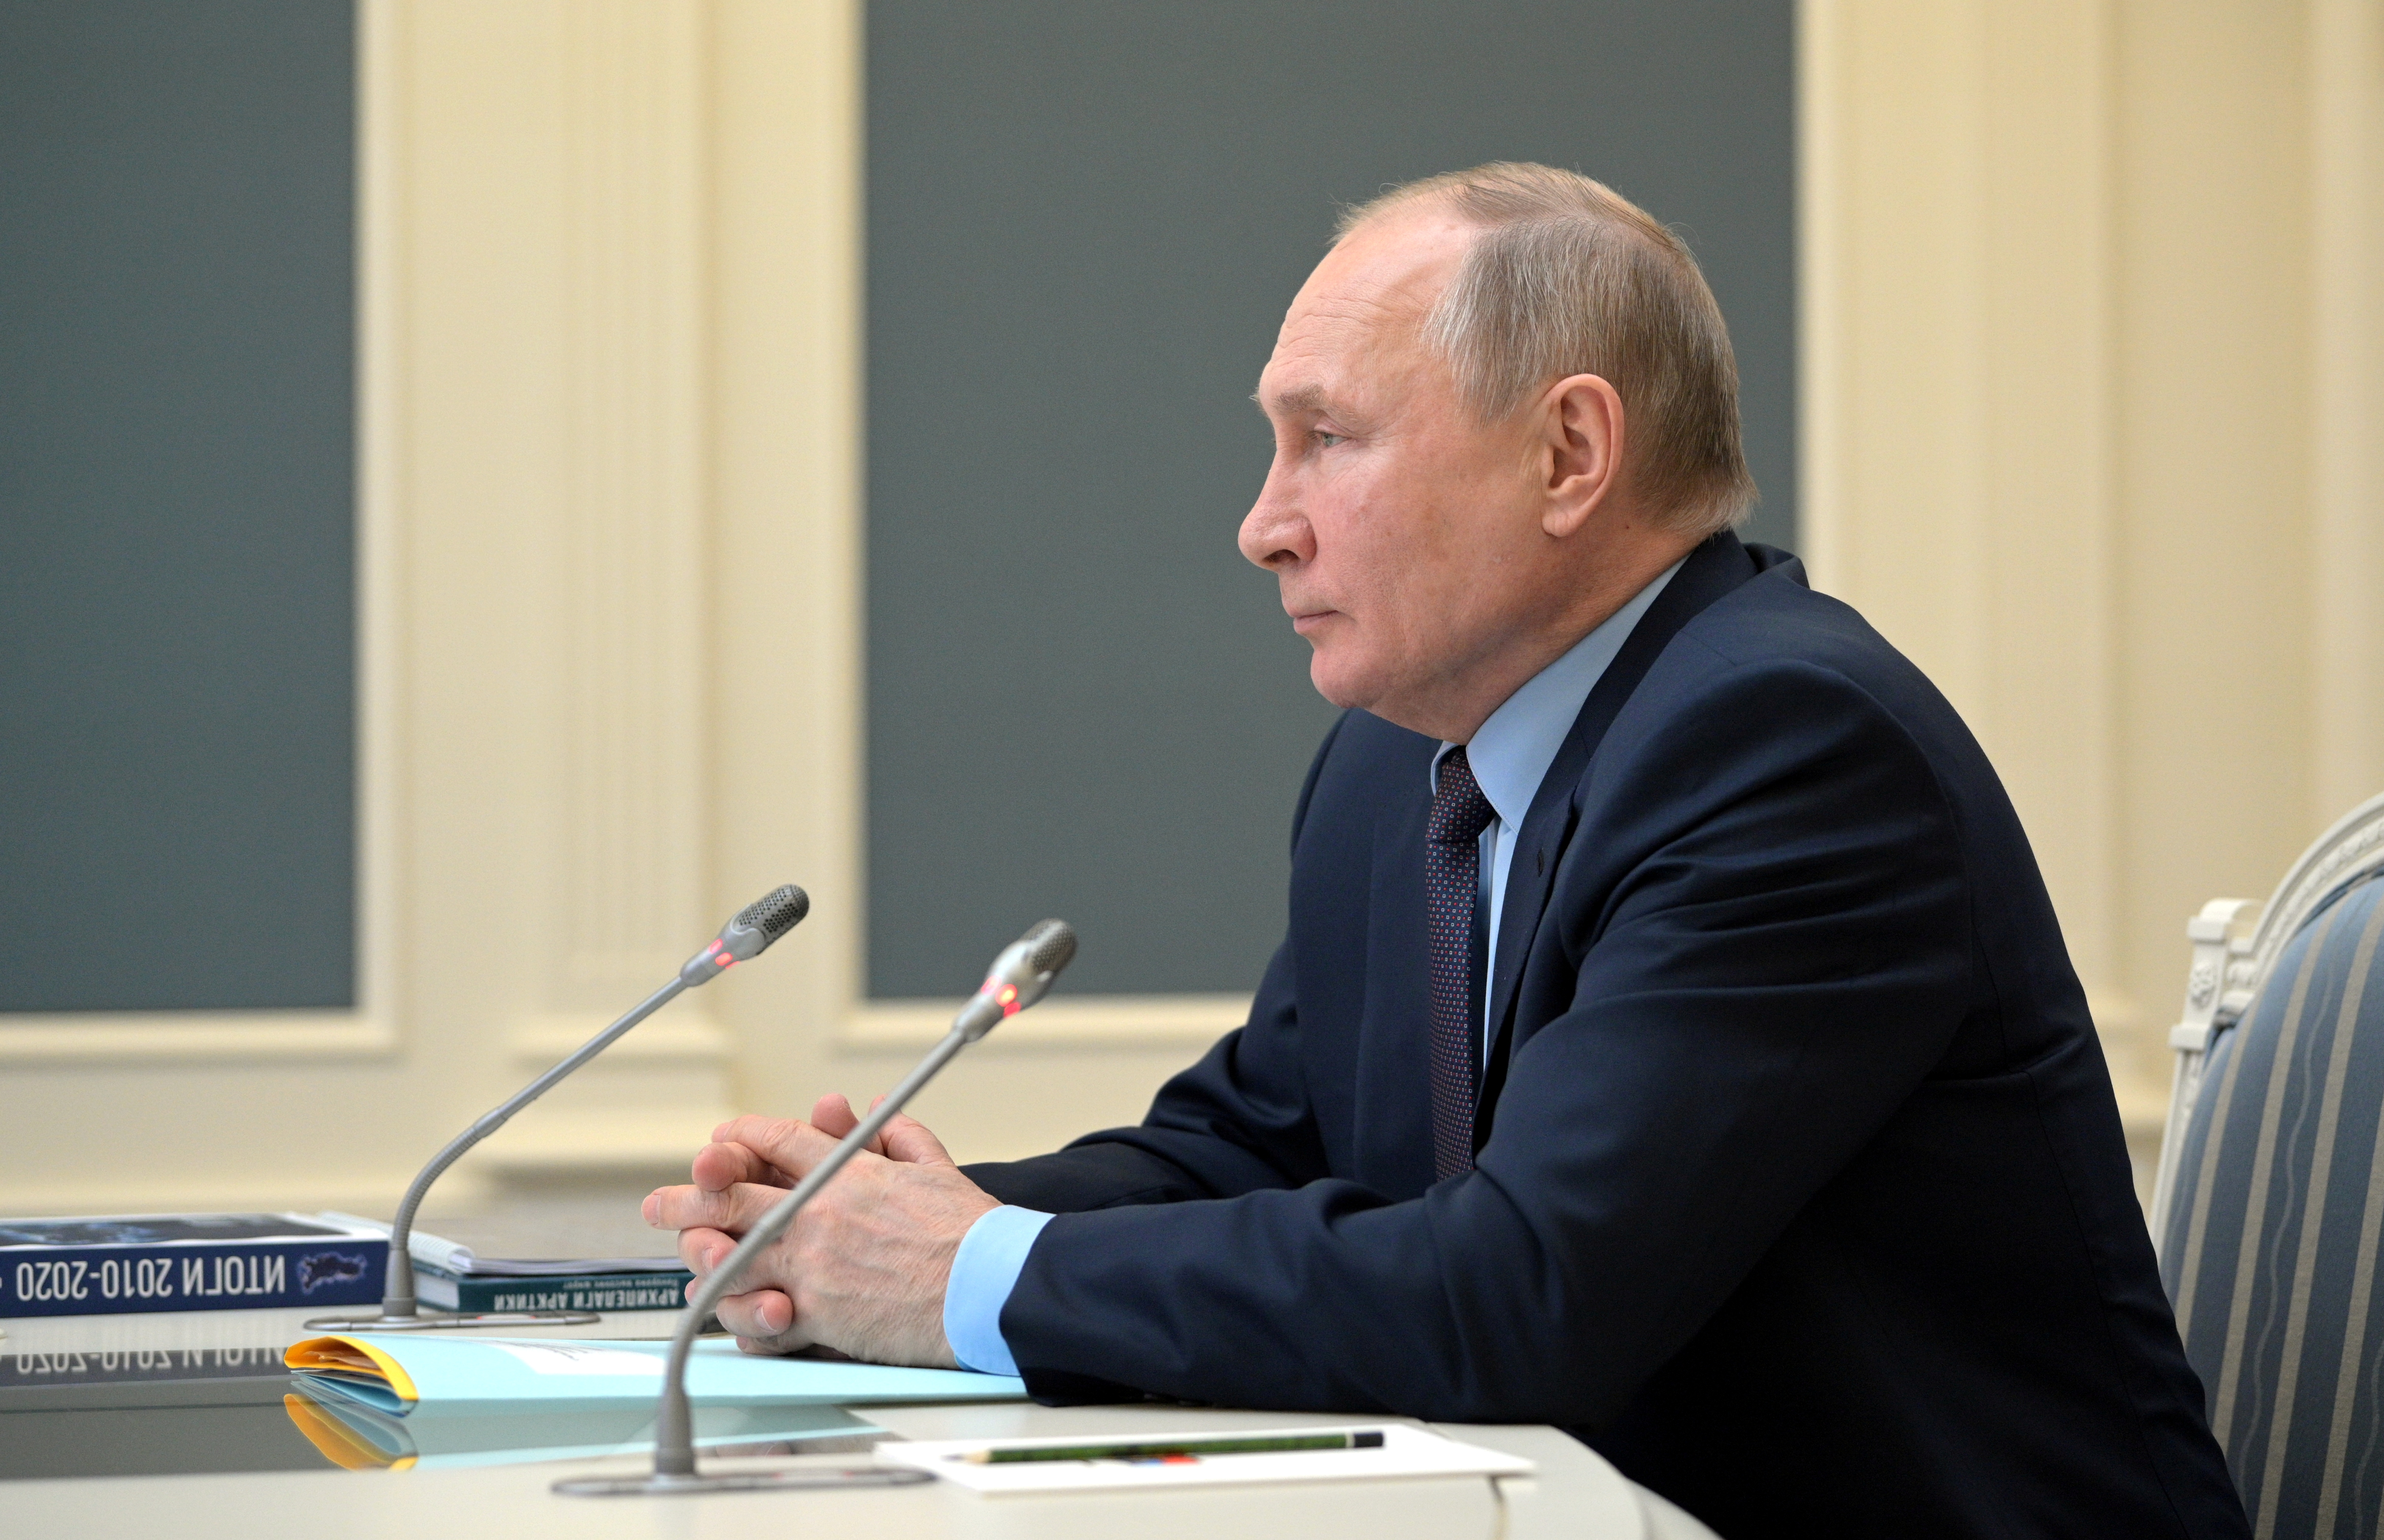 Russian President Vladimir Putin attends a session of the board of trustees of the Russian Geographical Society via a video conference call in Moscow, Russia April 14, 2021. Sputnik/Alexei Druzhinin/Kremlin via REUTERS